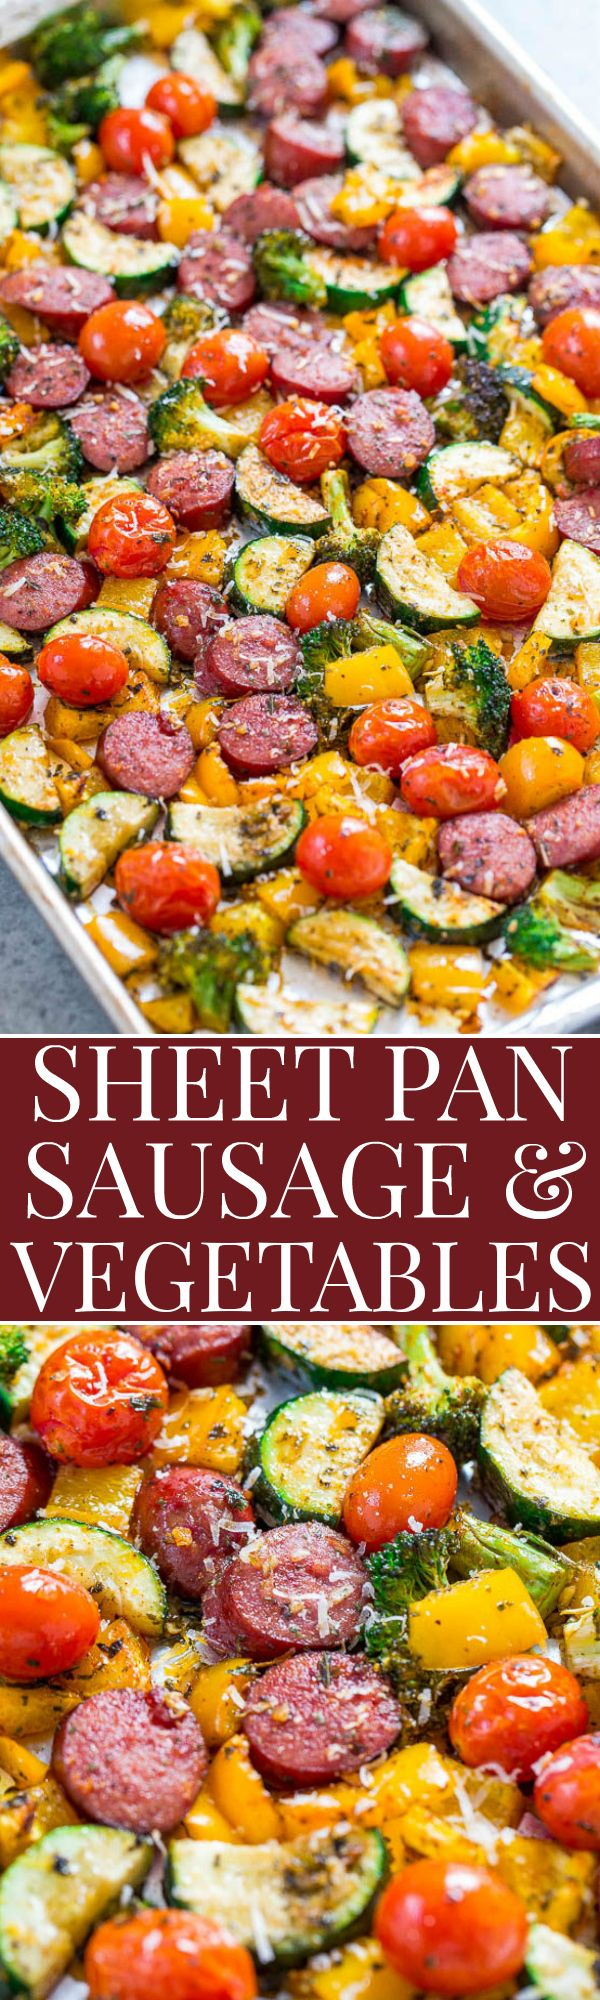 Sheet Pan Sausage and Vegetables - Fast, EASY, one pan recipe that's full of FLAVOR!! Juicy sausage, lots of veggies, and a dusting of Parmesan cheese to finish it off! Put it into your regular rotation!!